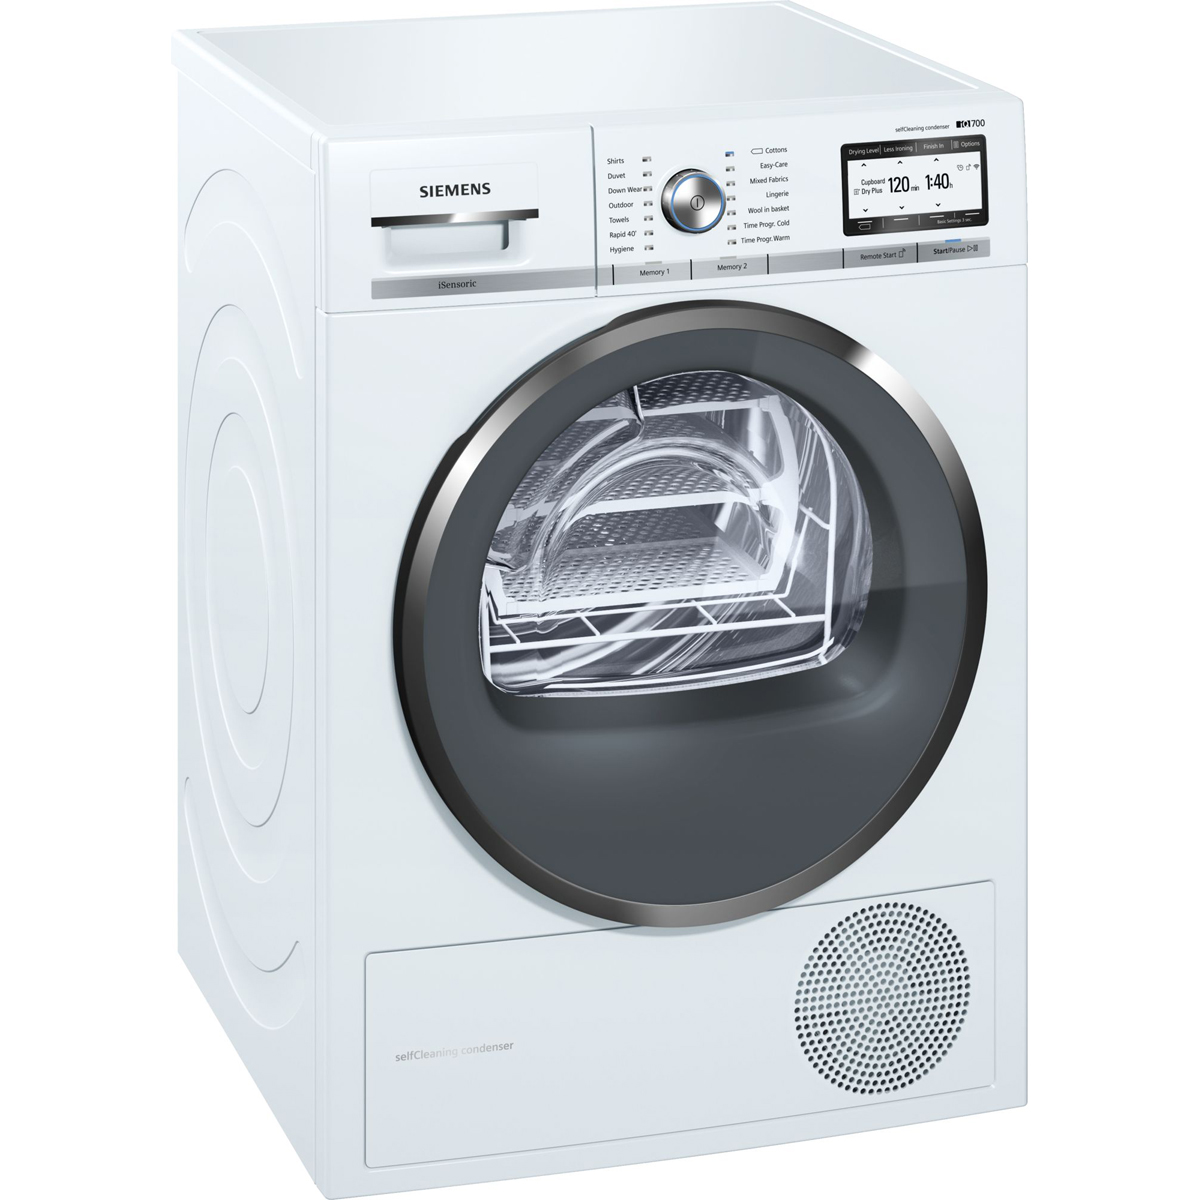 Siemens iQ700 WT4HY791GB Tumble Dryer Condenser 9 kg A++ White